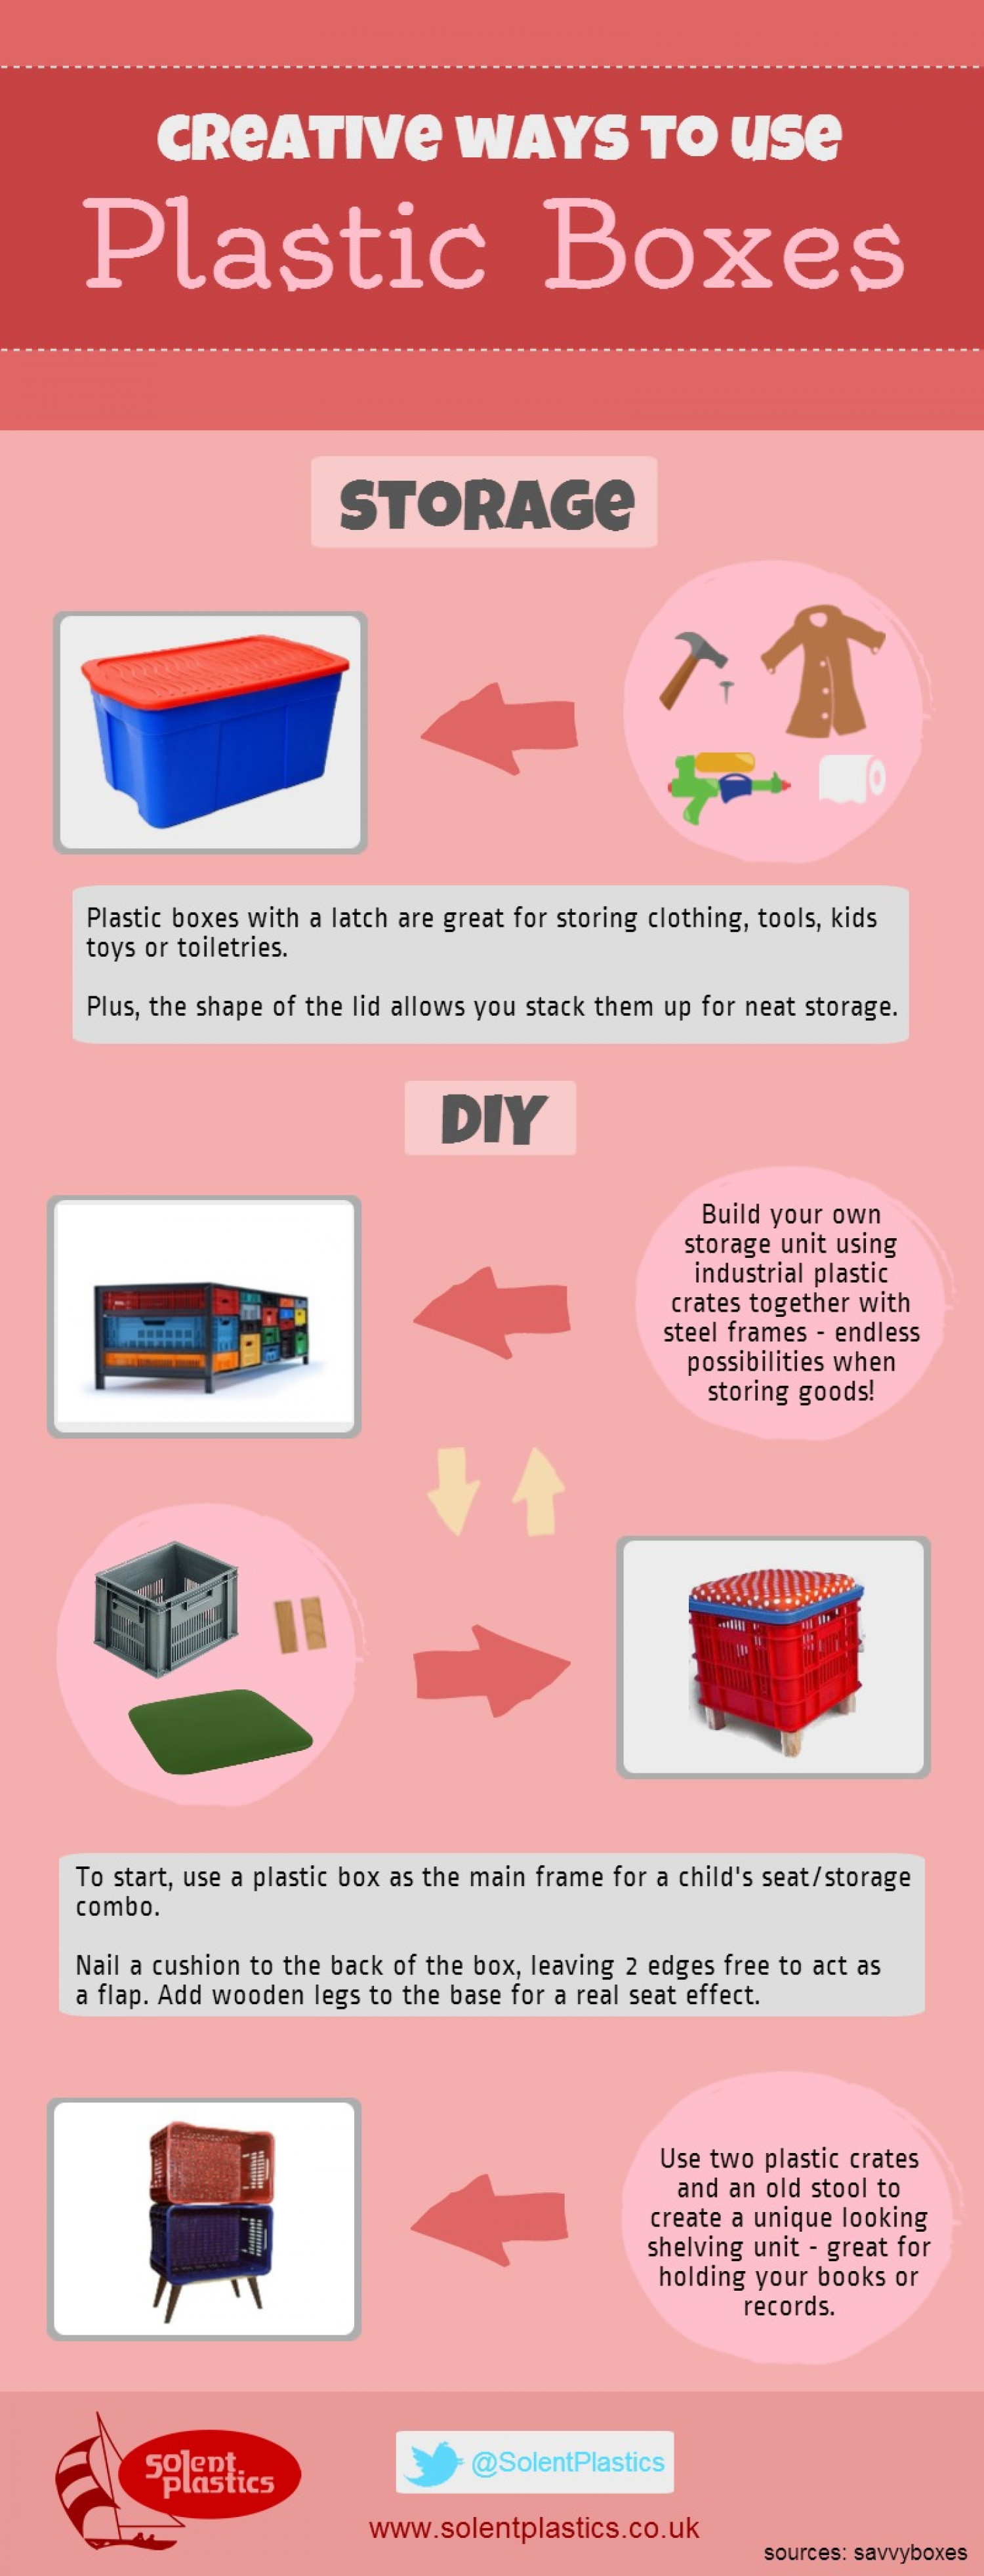 Creative Ways to use Plastic Boxes Infographic